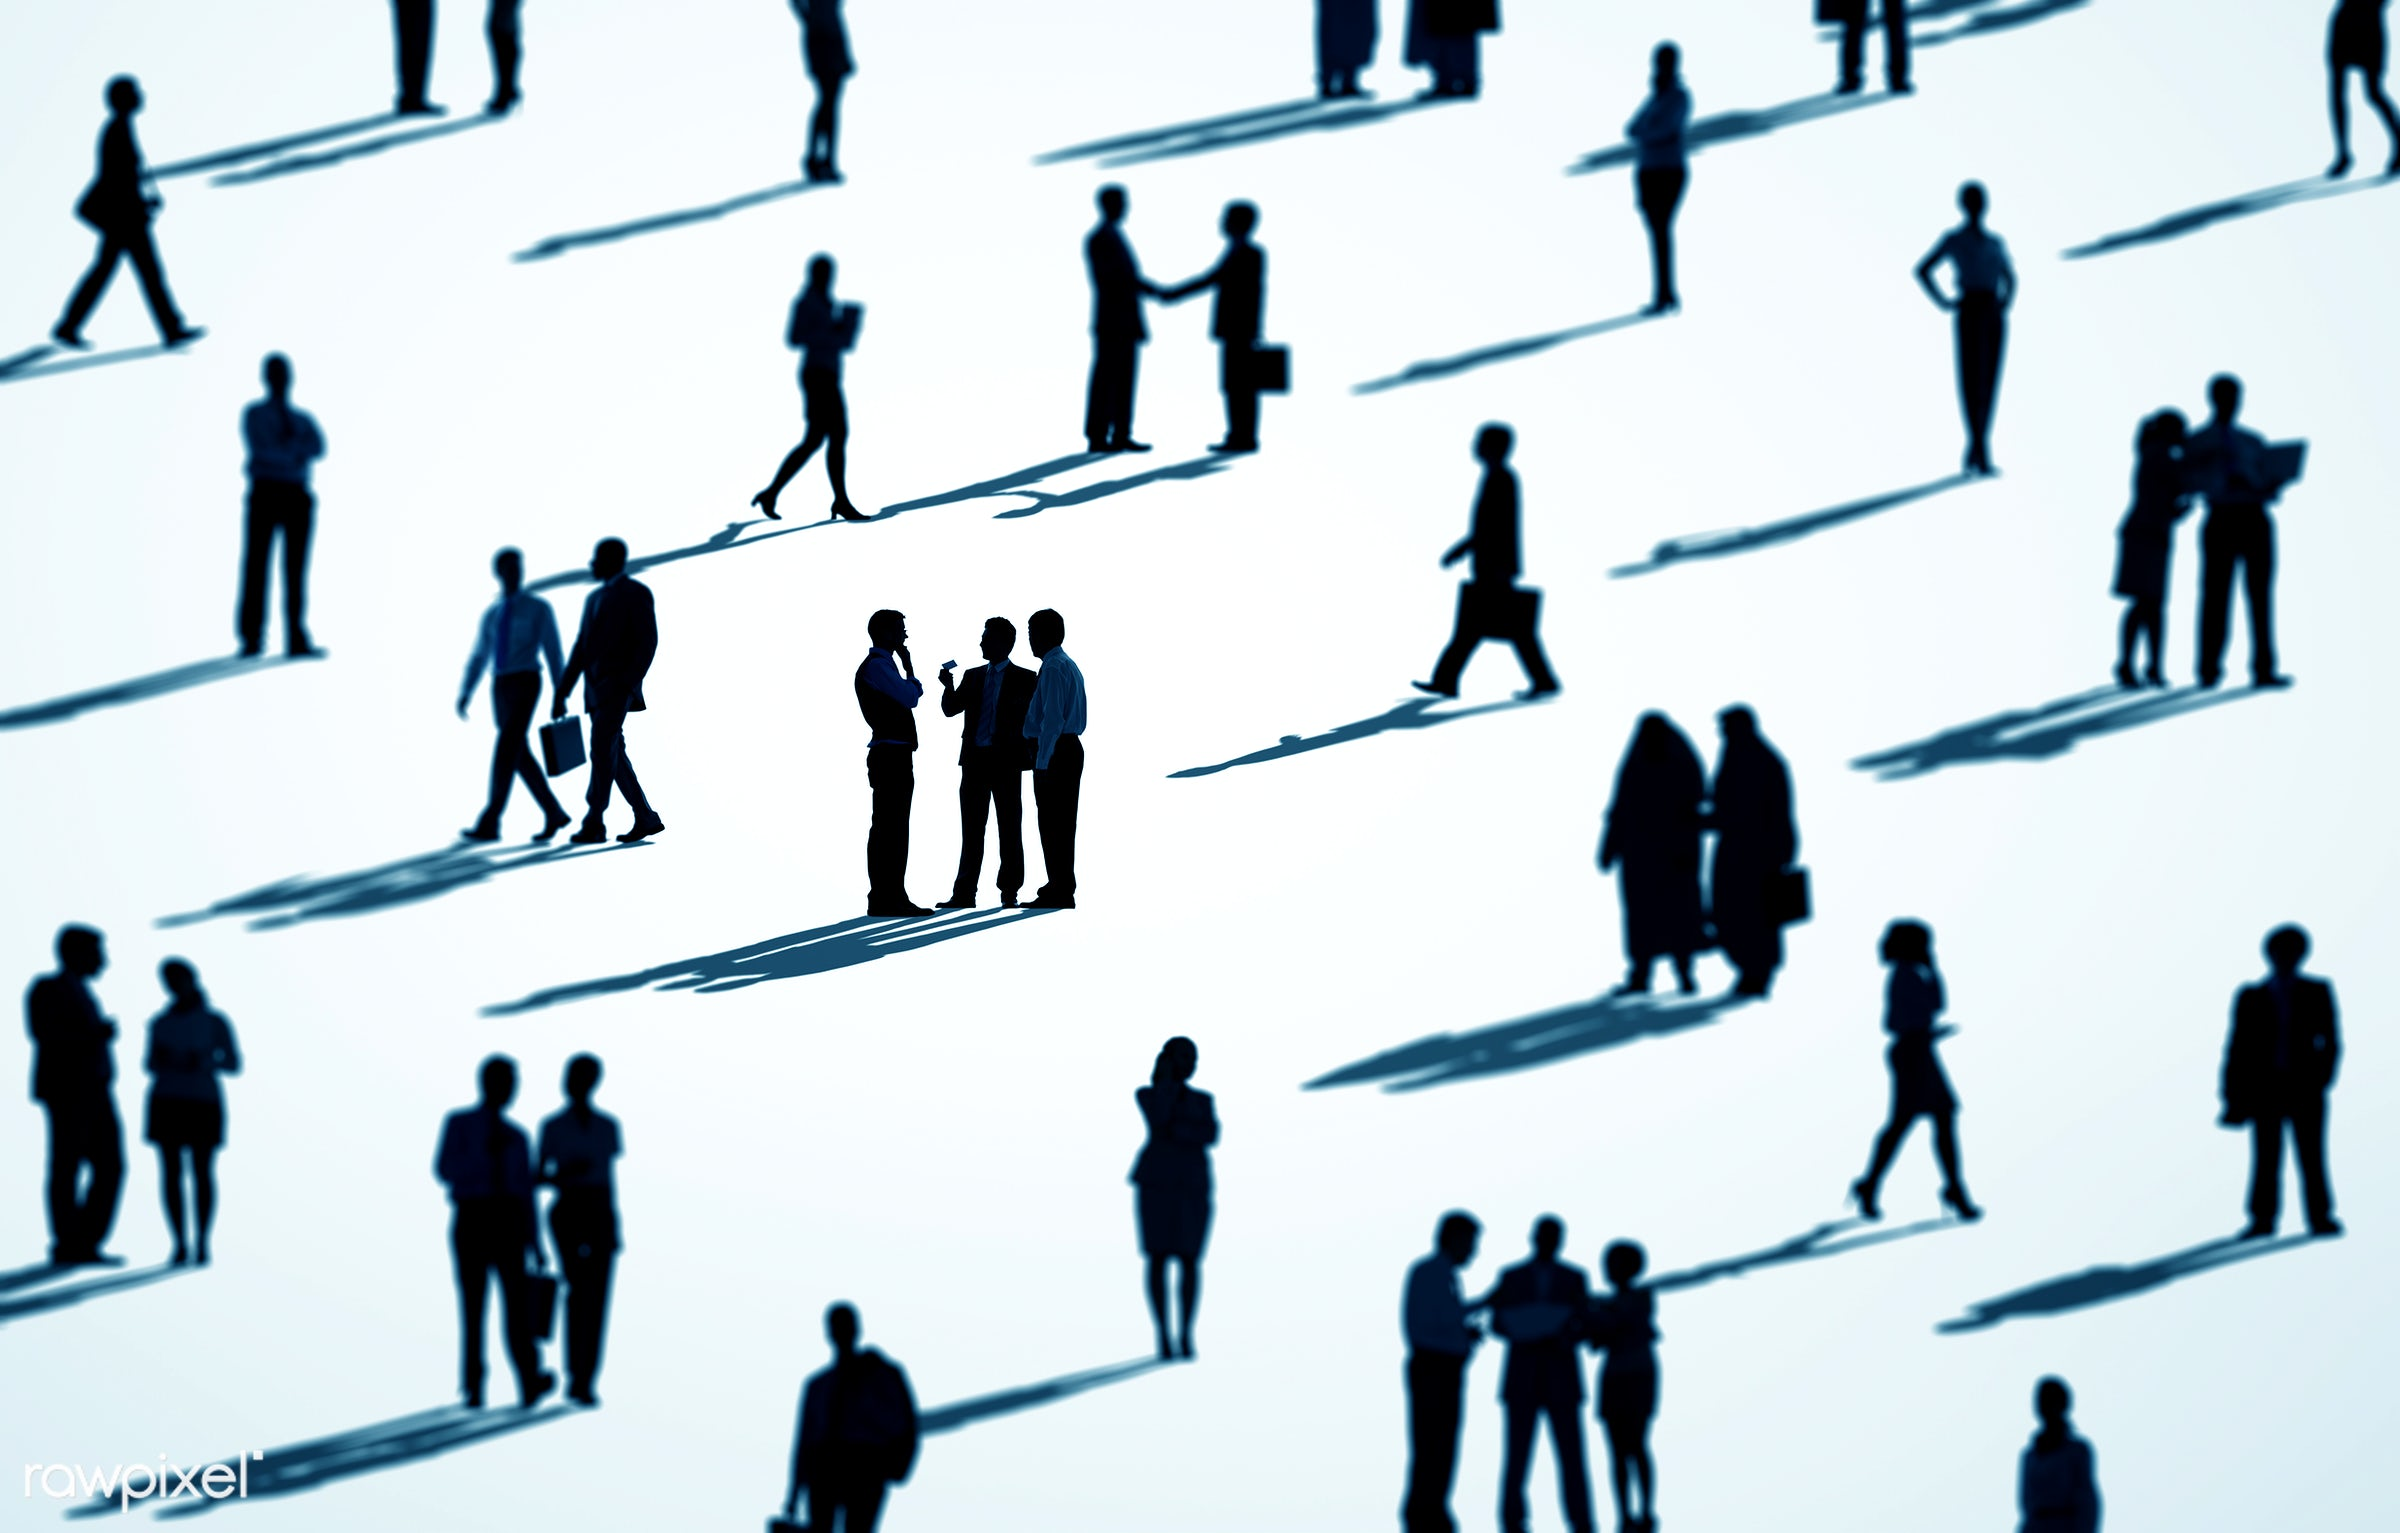 abstract, business, business people, businessmen, businesswomen, communication, community, commuter, connection, corporate,...